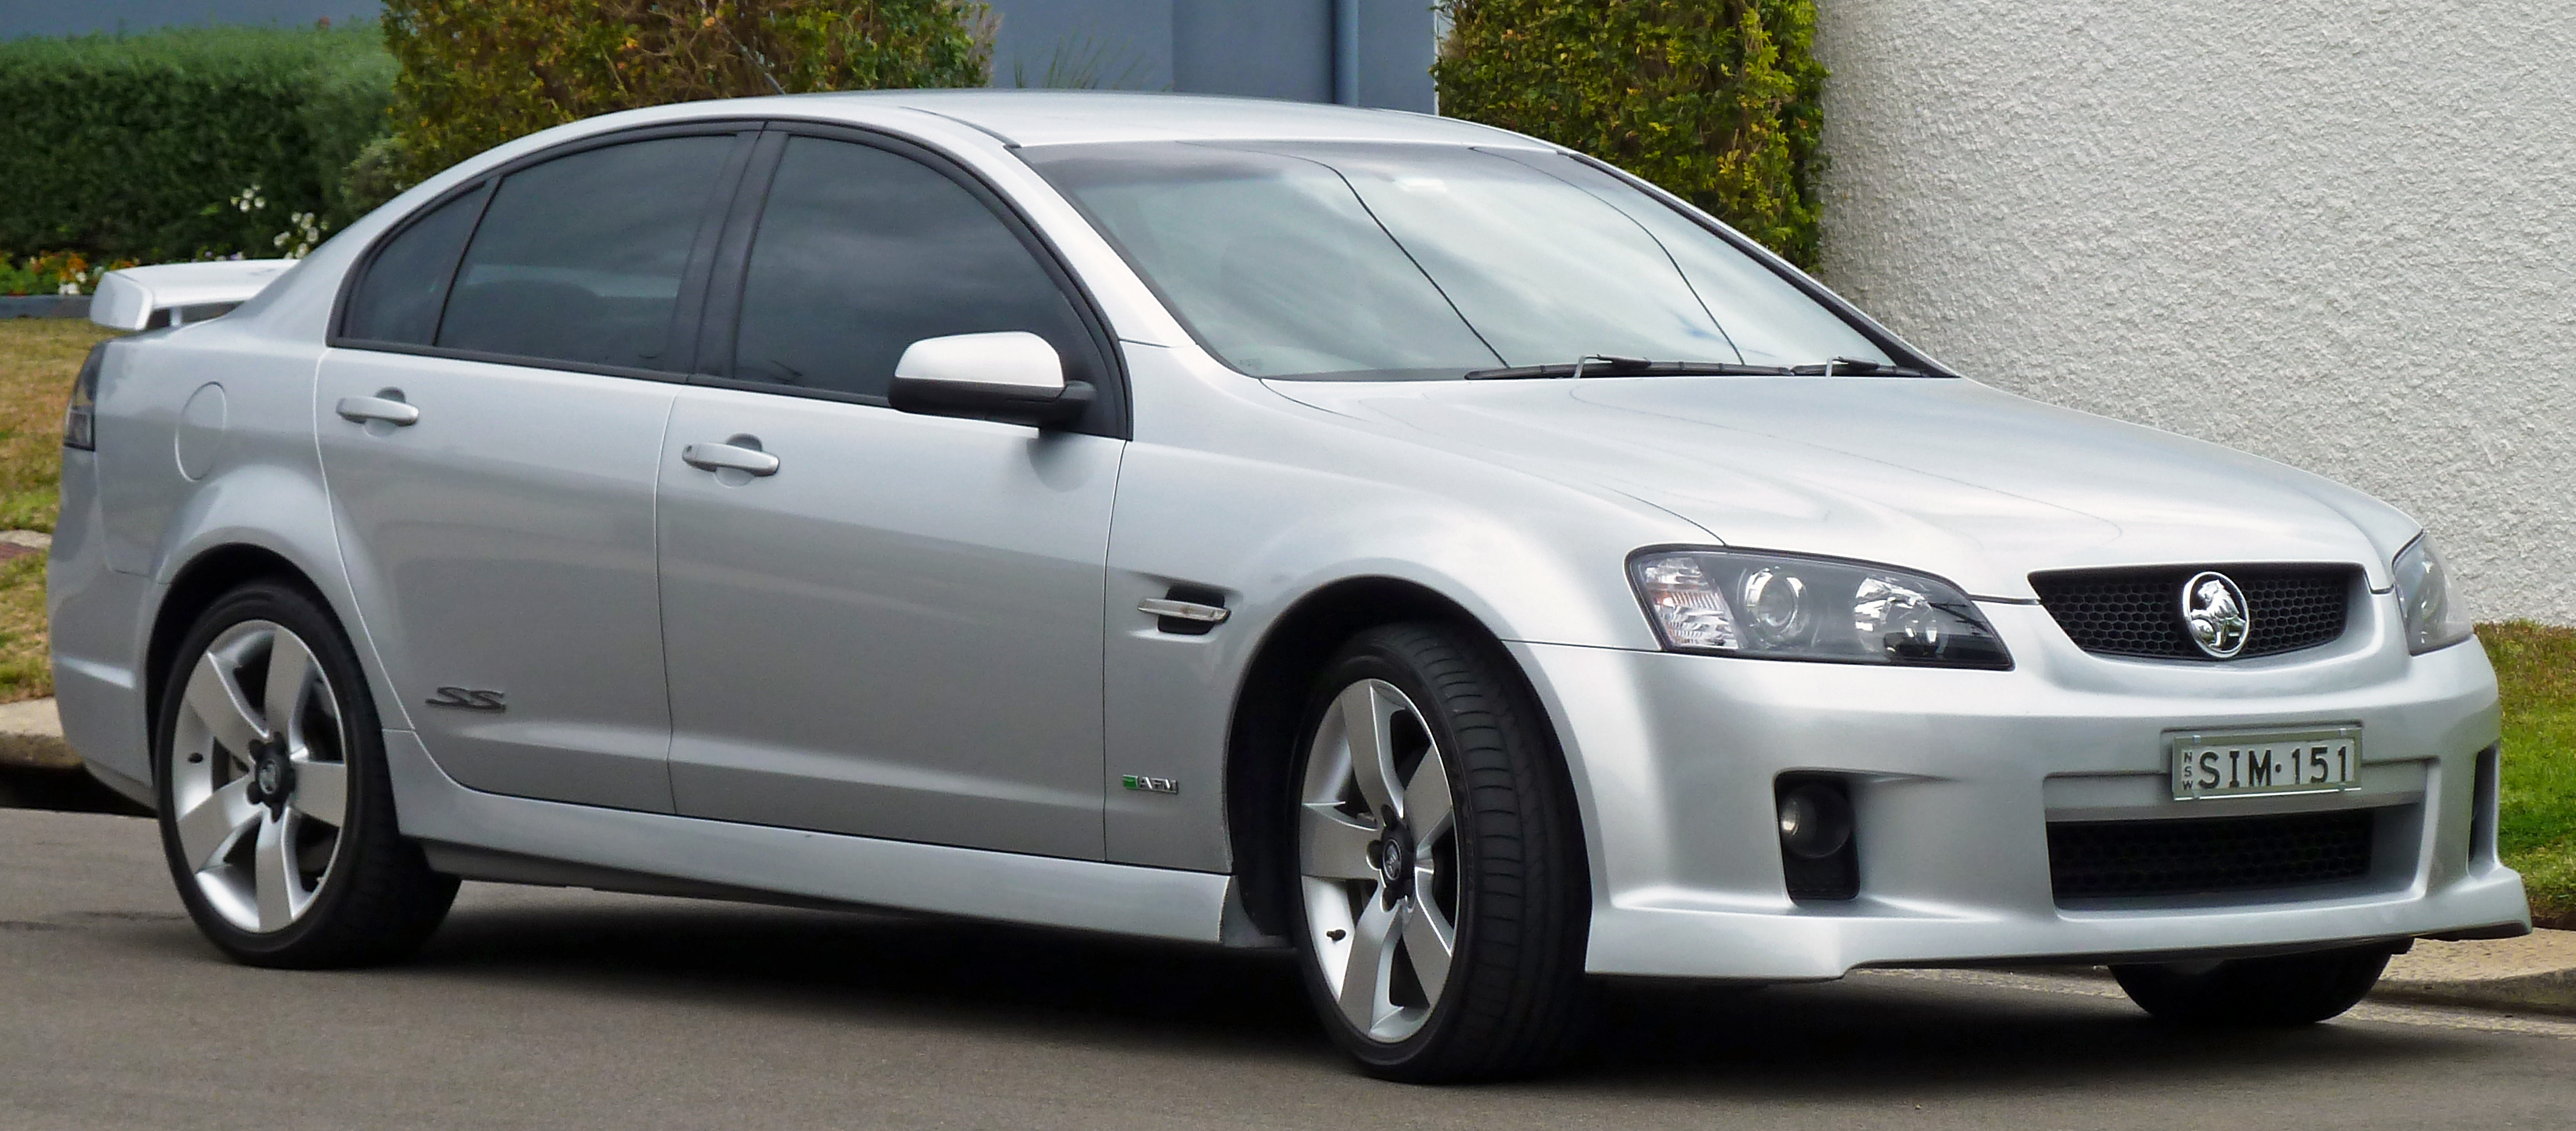 holden commodore (vt) 2007 pictures #4